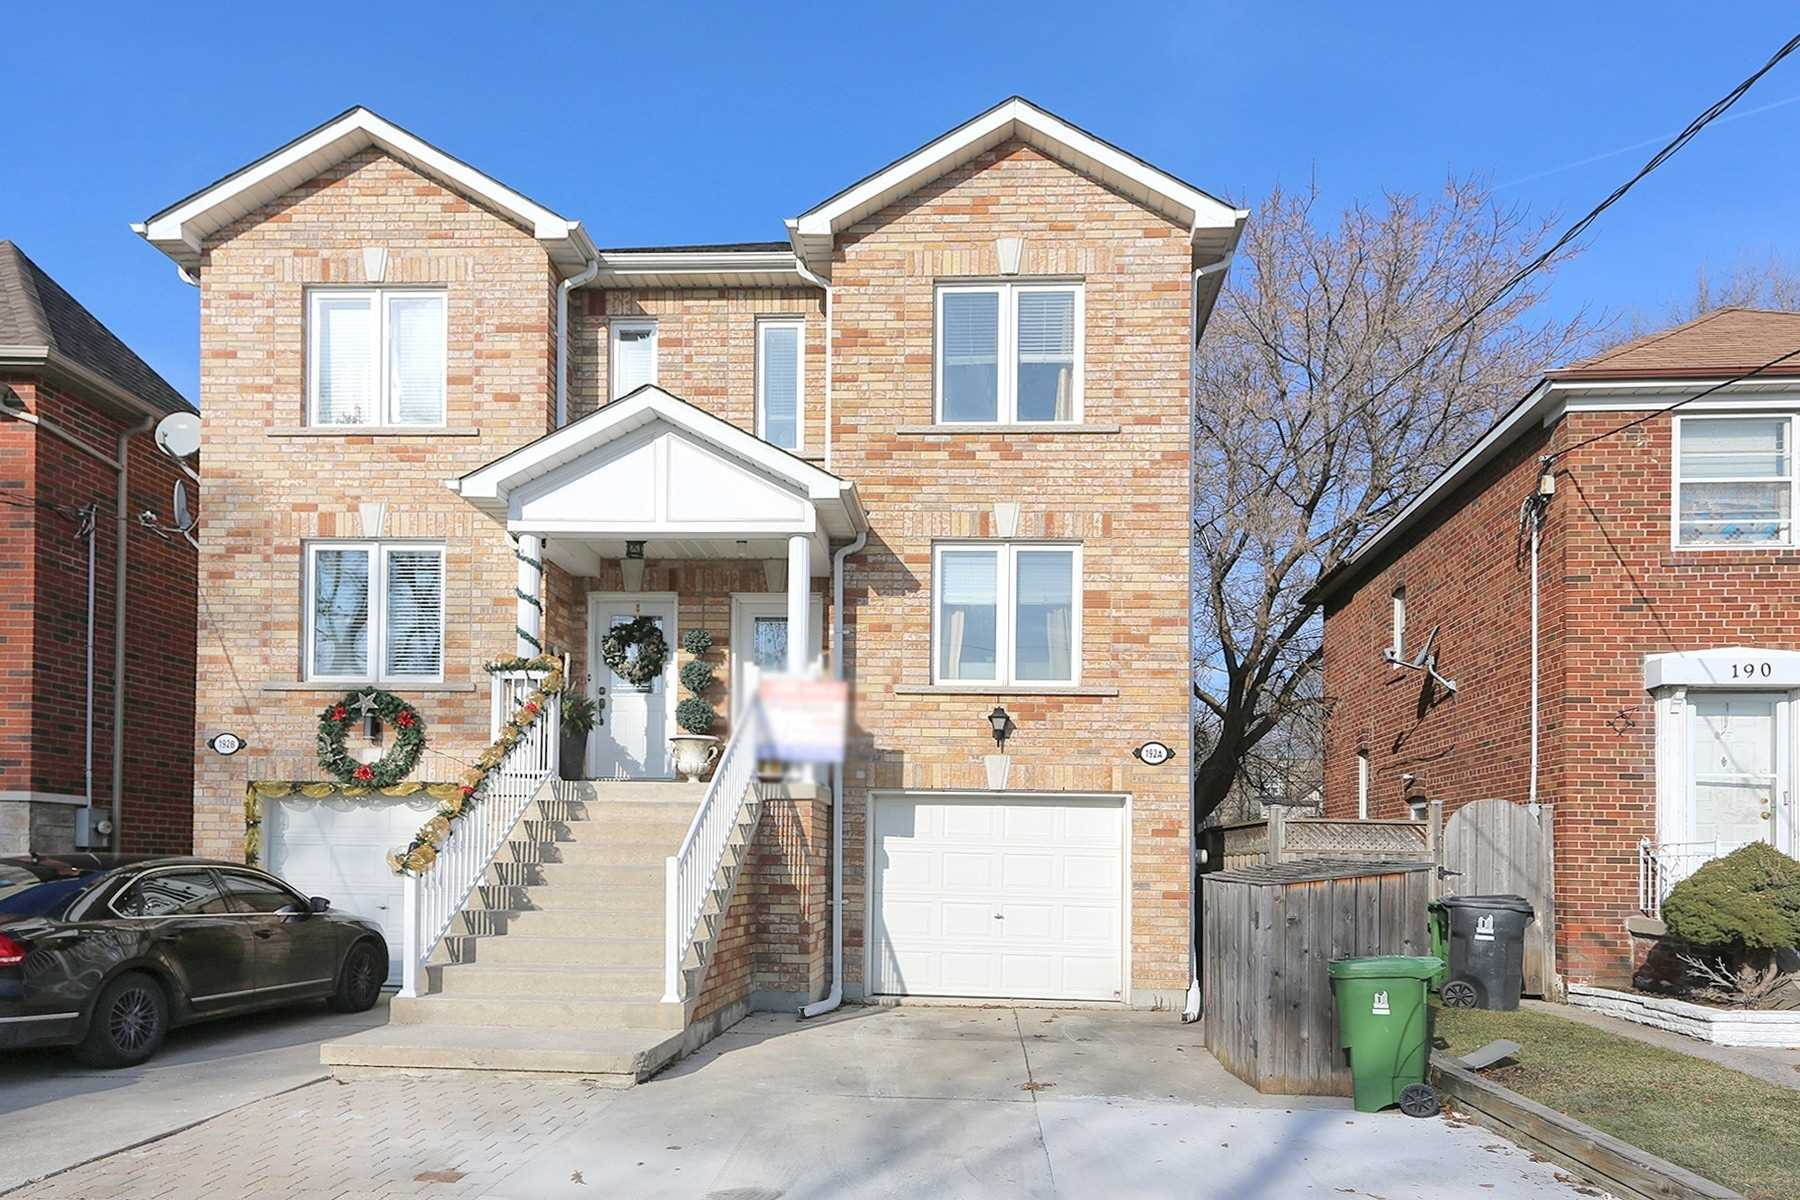 House for sale at 192 Cameron Avenue Toronto Ontario - MLS: W4324255